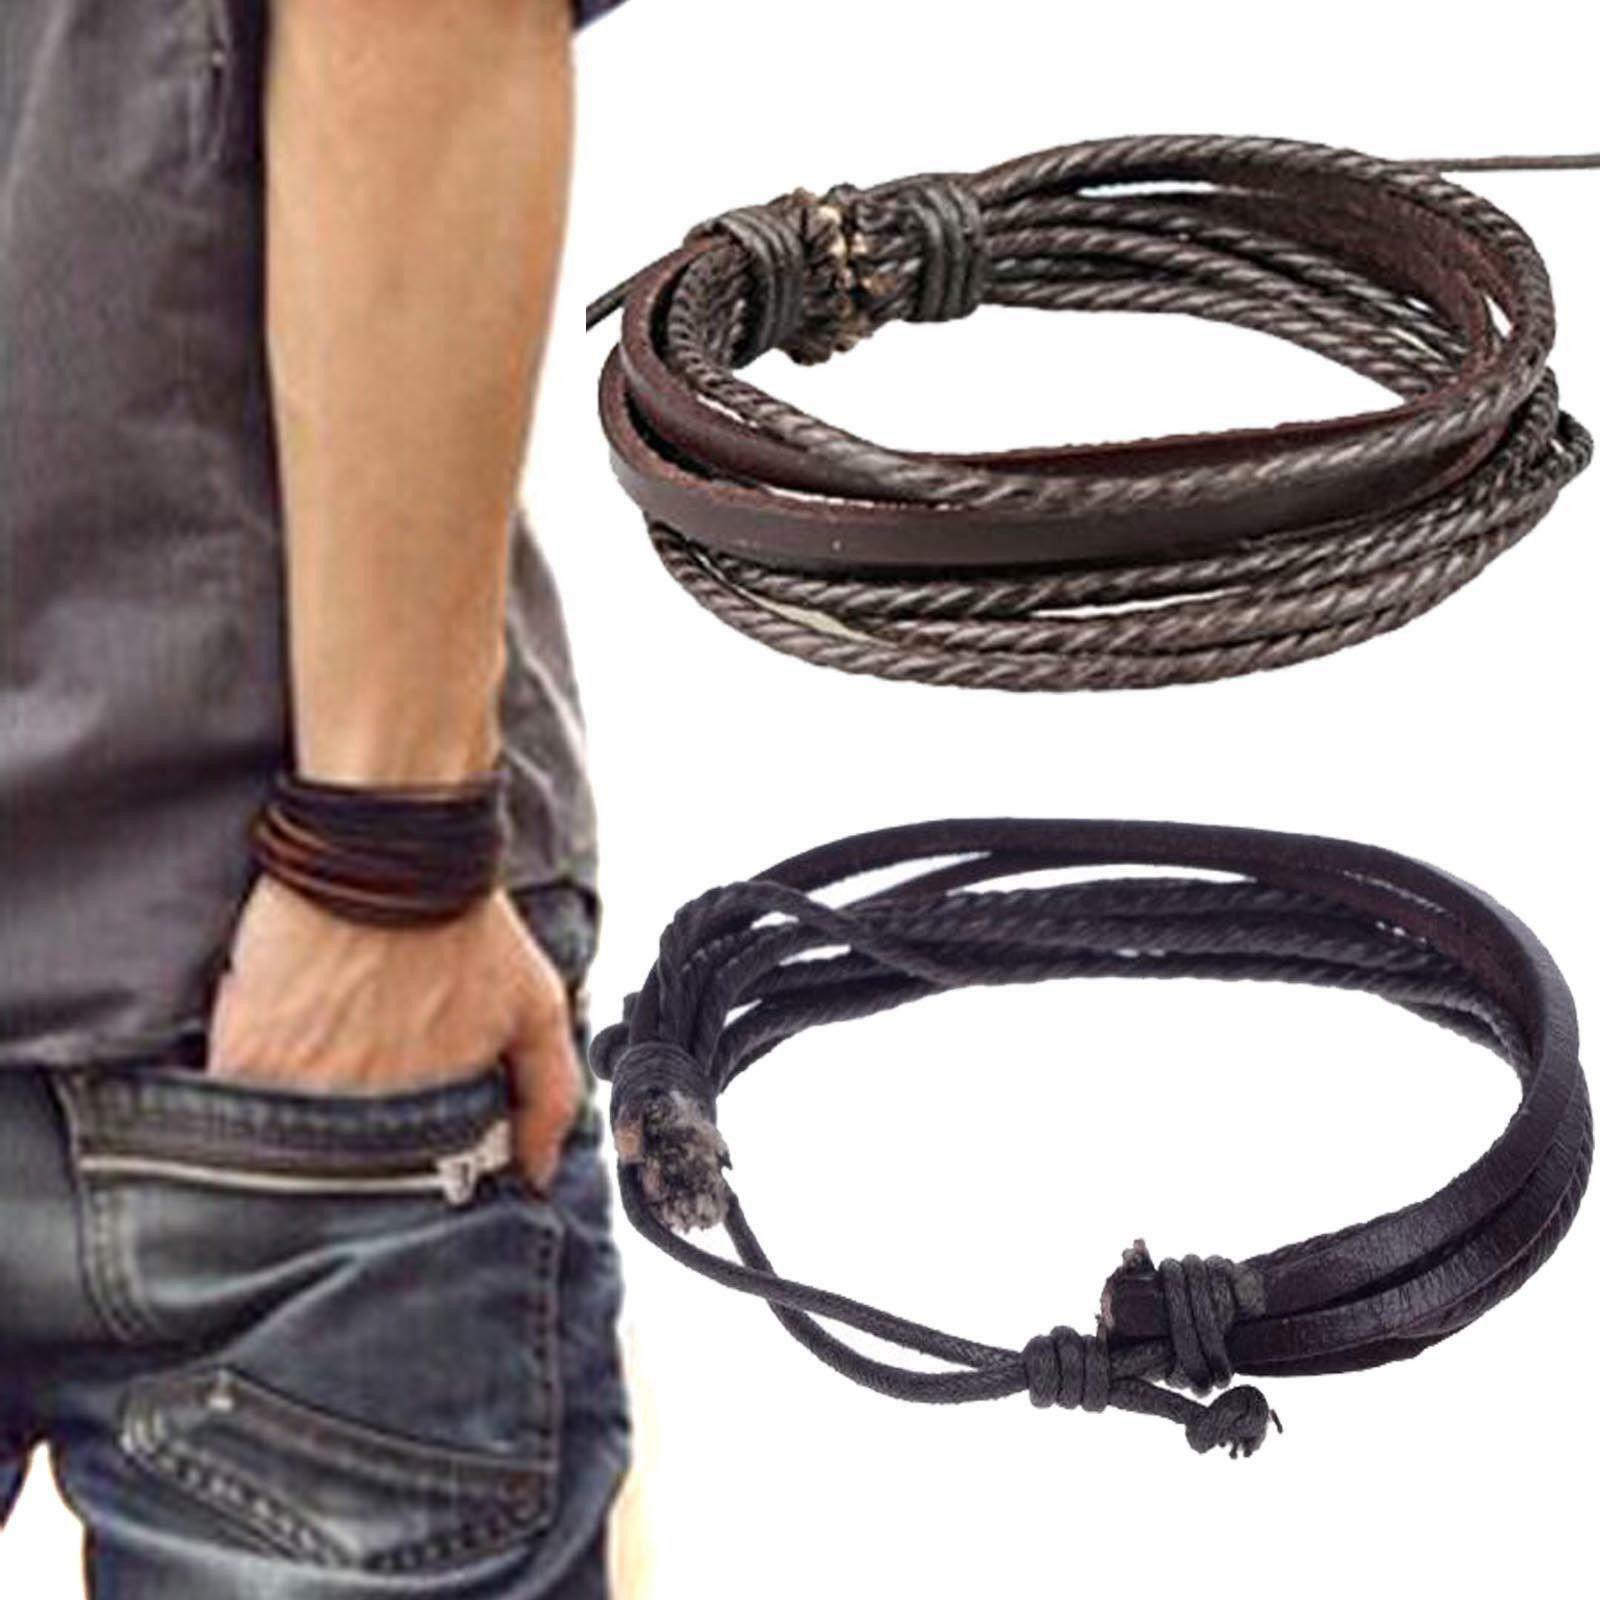 How to make leather bracelets for men